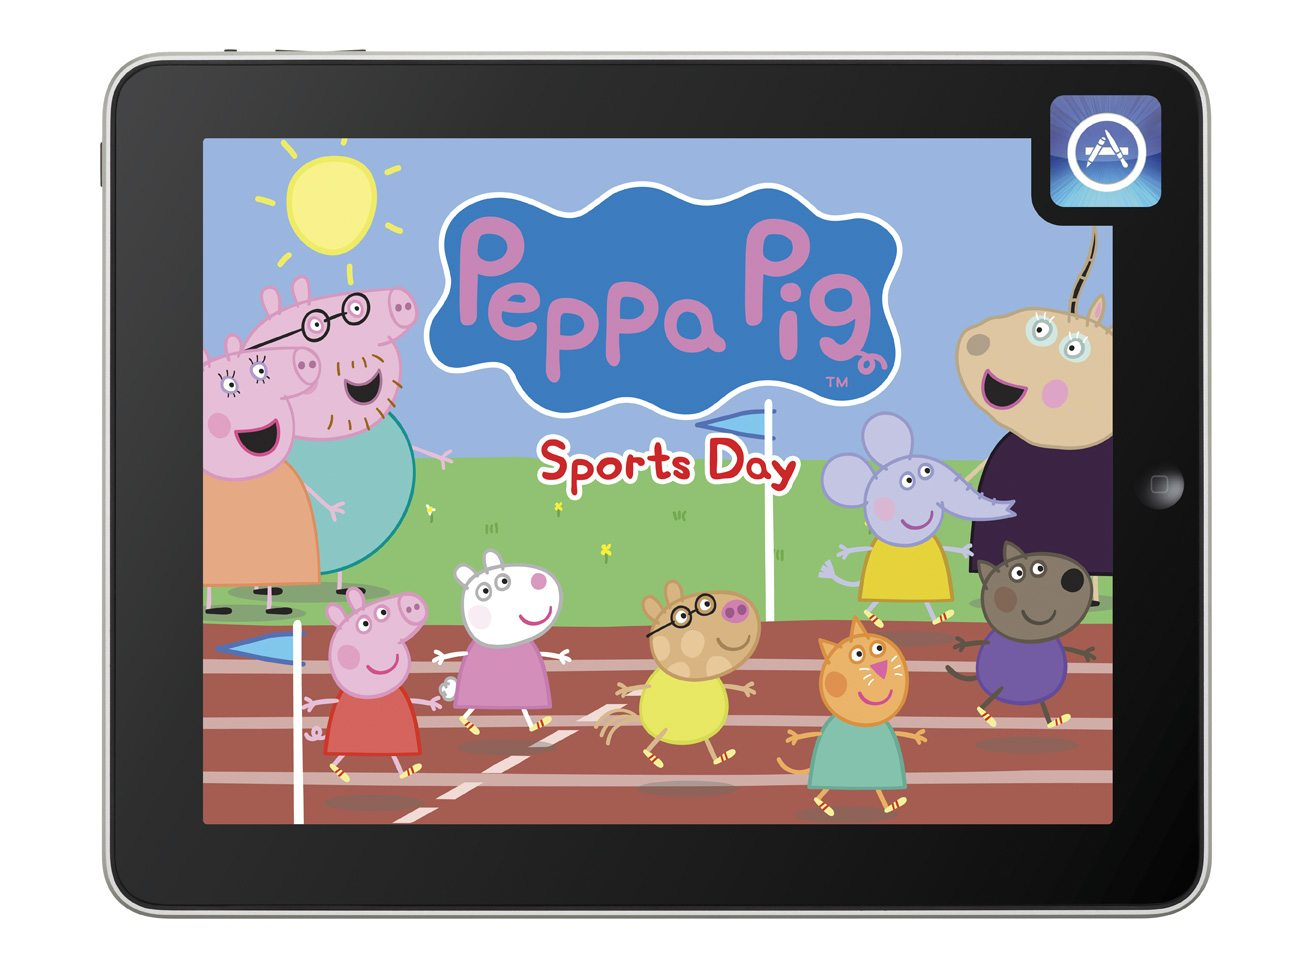 Peppa Pig Sports Day Screen Shots